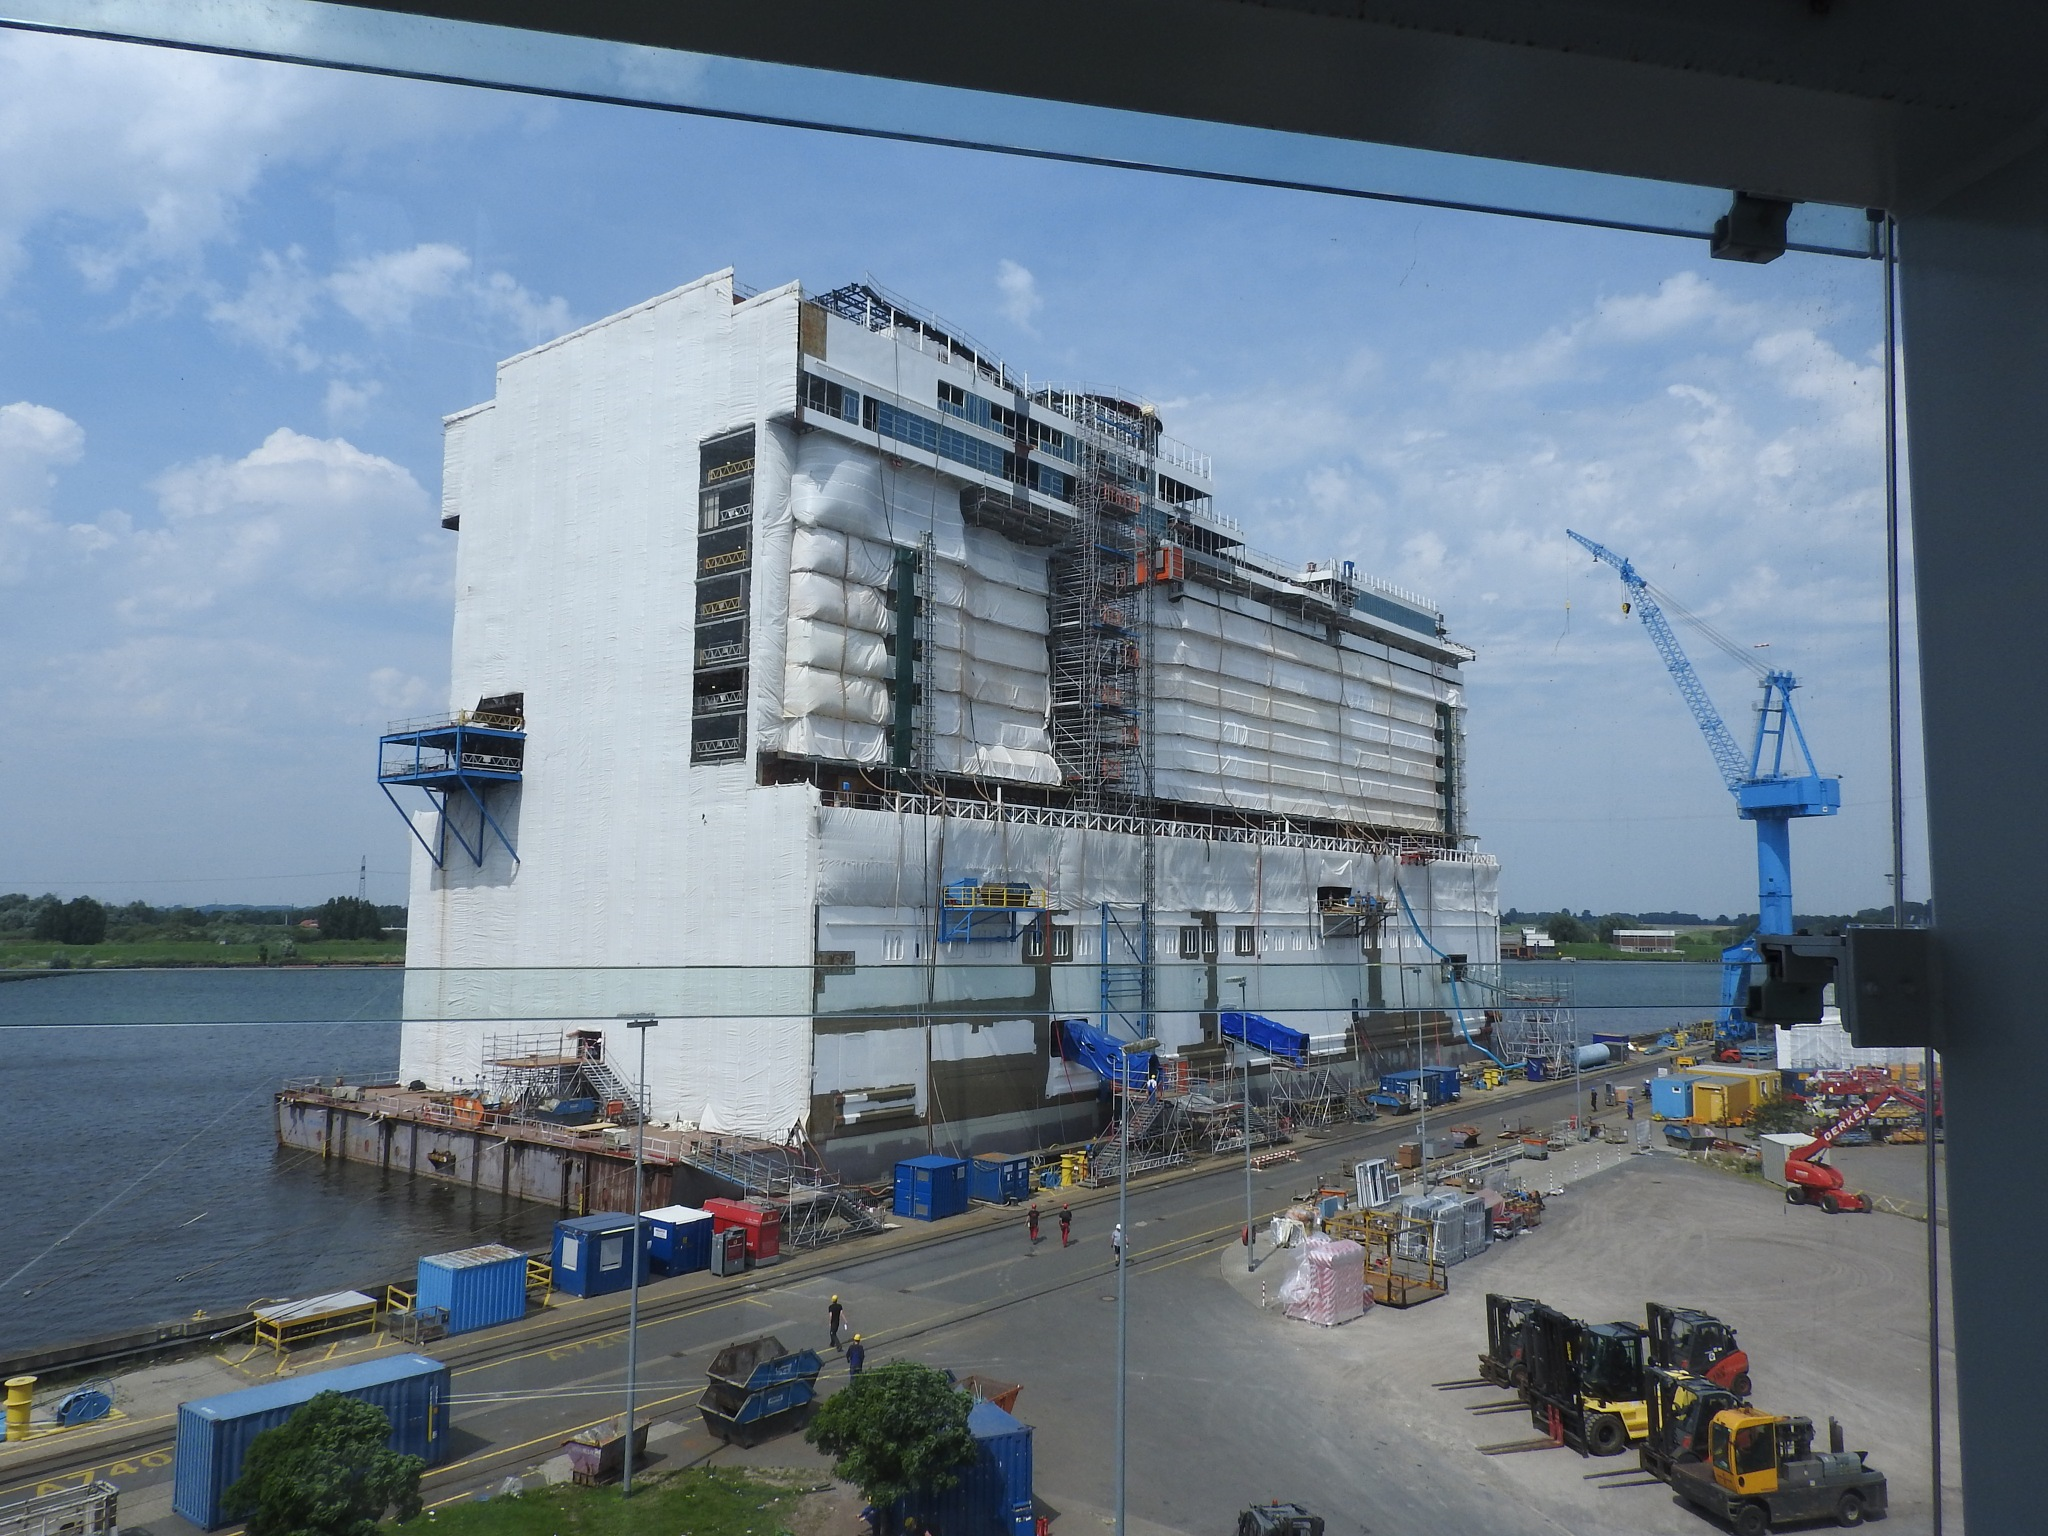 A section of a cruise liner under construction by Paolo Paparazzi